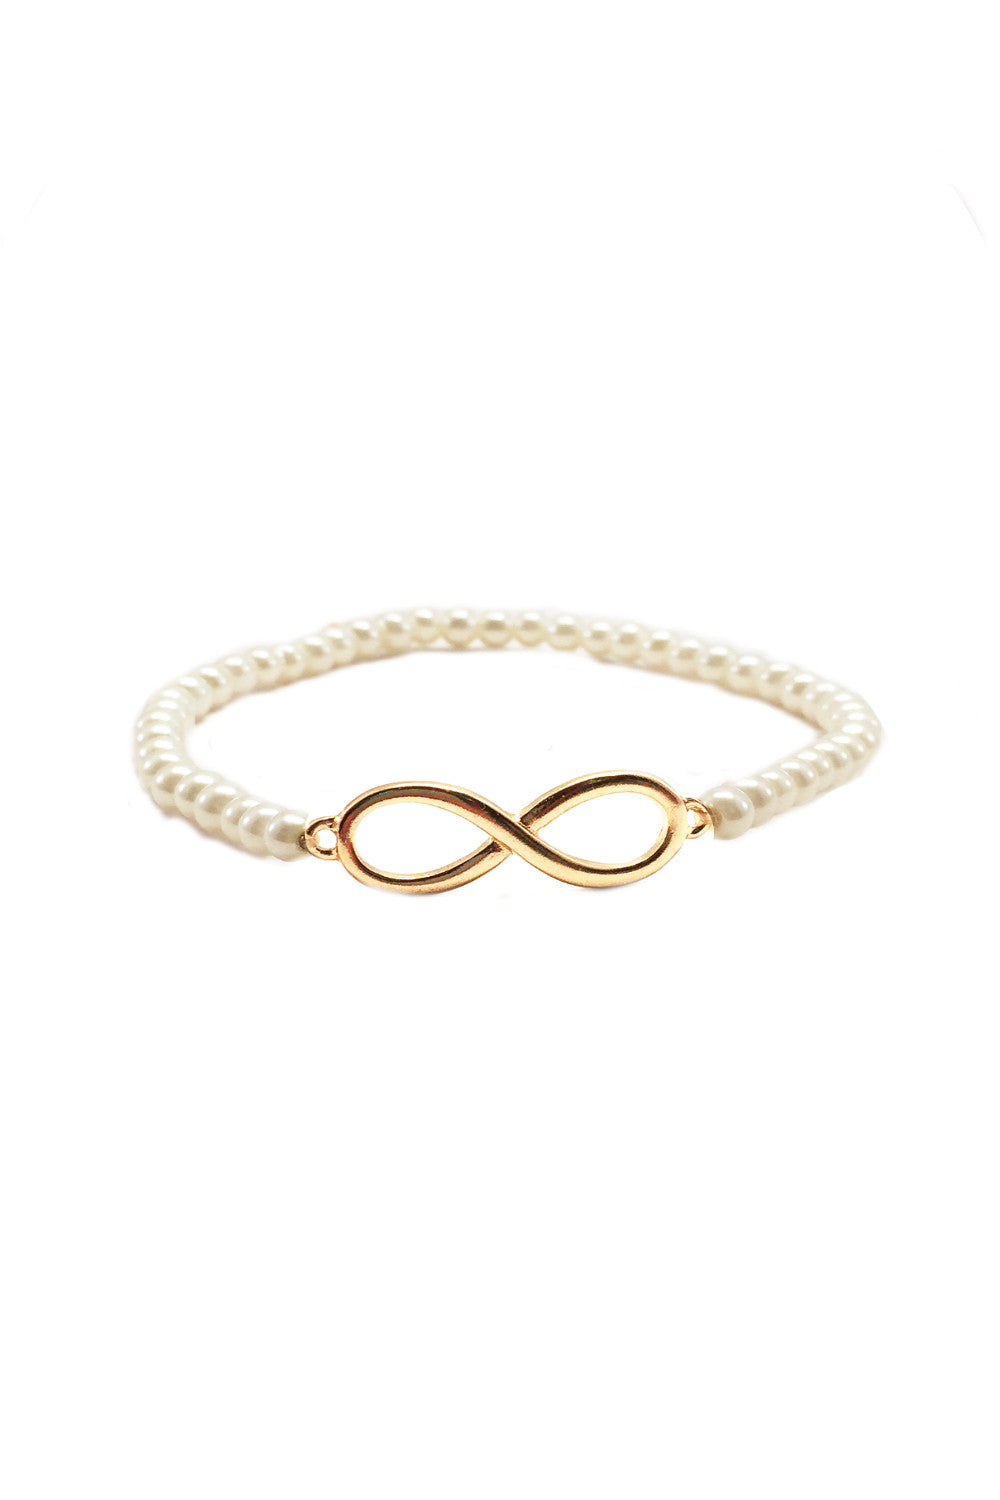 Infinity and Beyond Bracelet